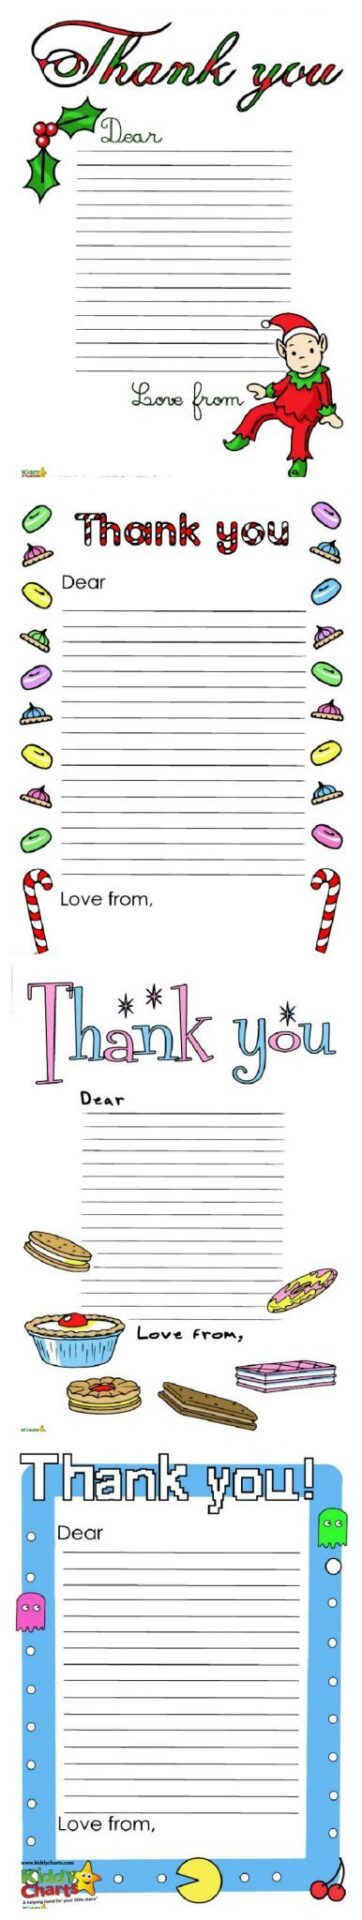 Thank you letters are an important part of birthdays and Christmas. Kids need to learn that thank you is a wonderful way to show their appreciation of what people have dome for them. Thank you letters are a tradition at Christmas and birthdays in our house; so here are a few free thank you letters to help you out too!